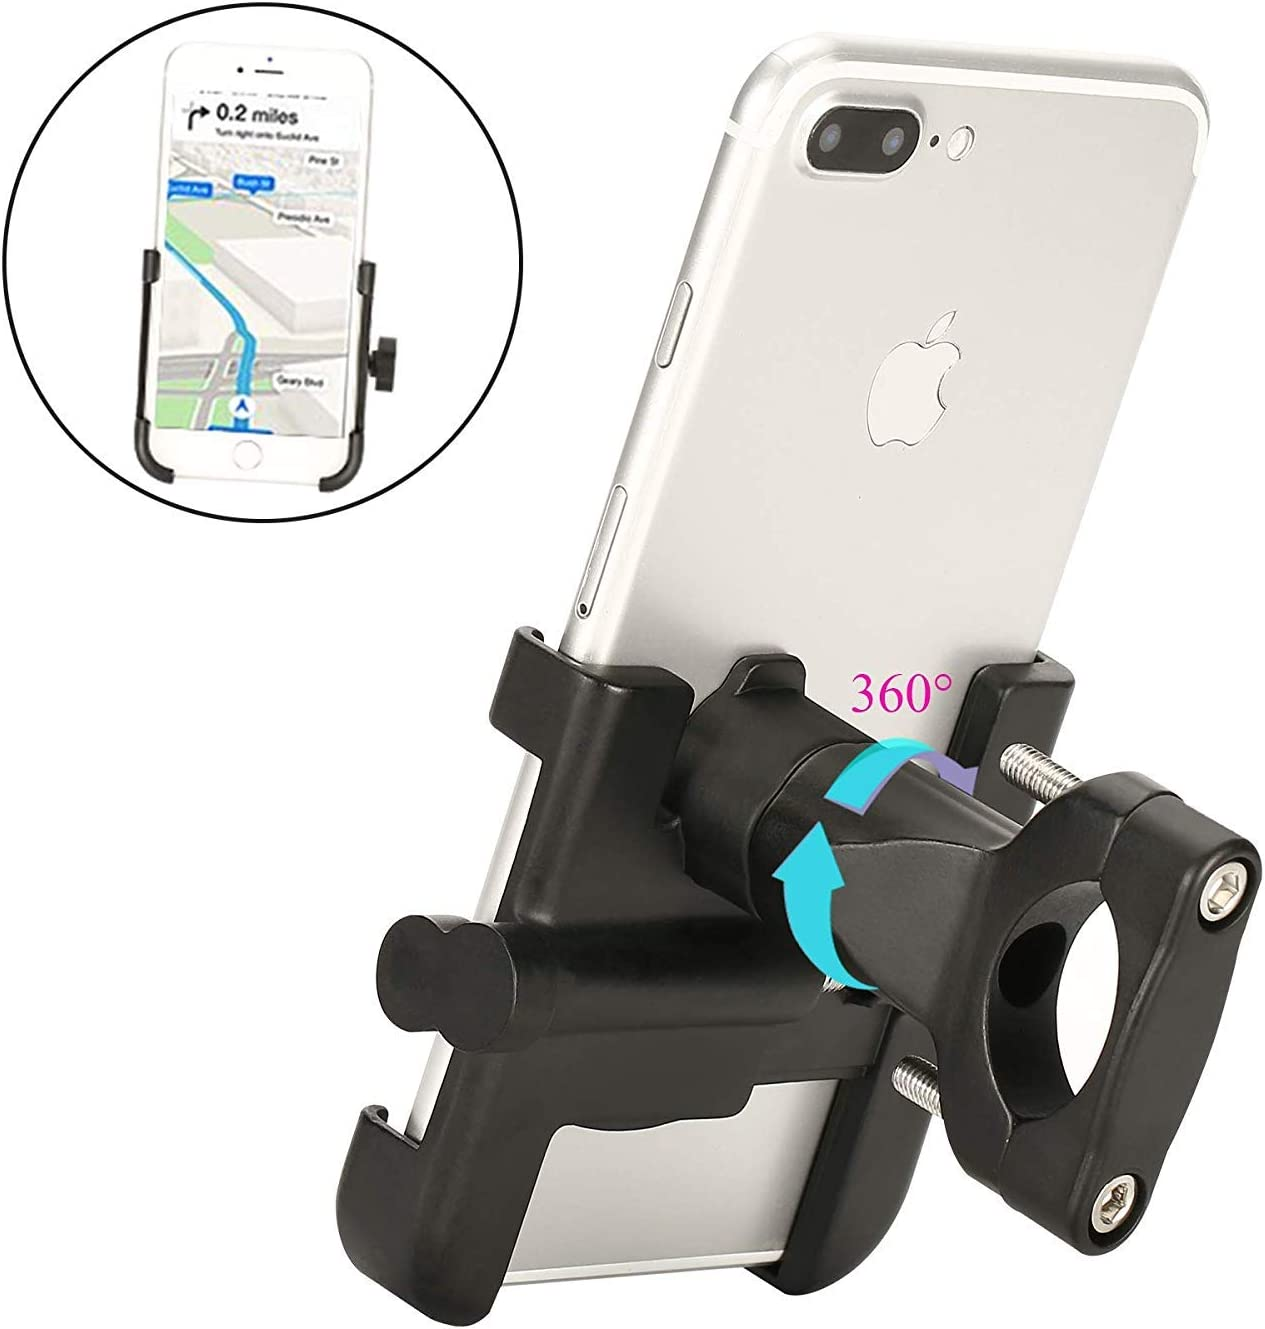 """Spritech Bike Phone Mount, Bike Motorcycle Phone Holder Alloy Handlebar Rack Fits iPhone X XR 8 7 6 